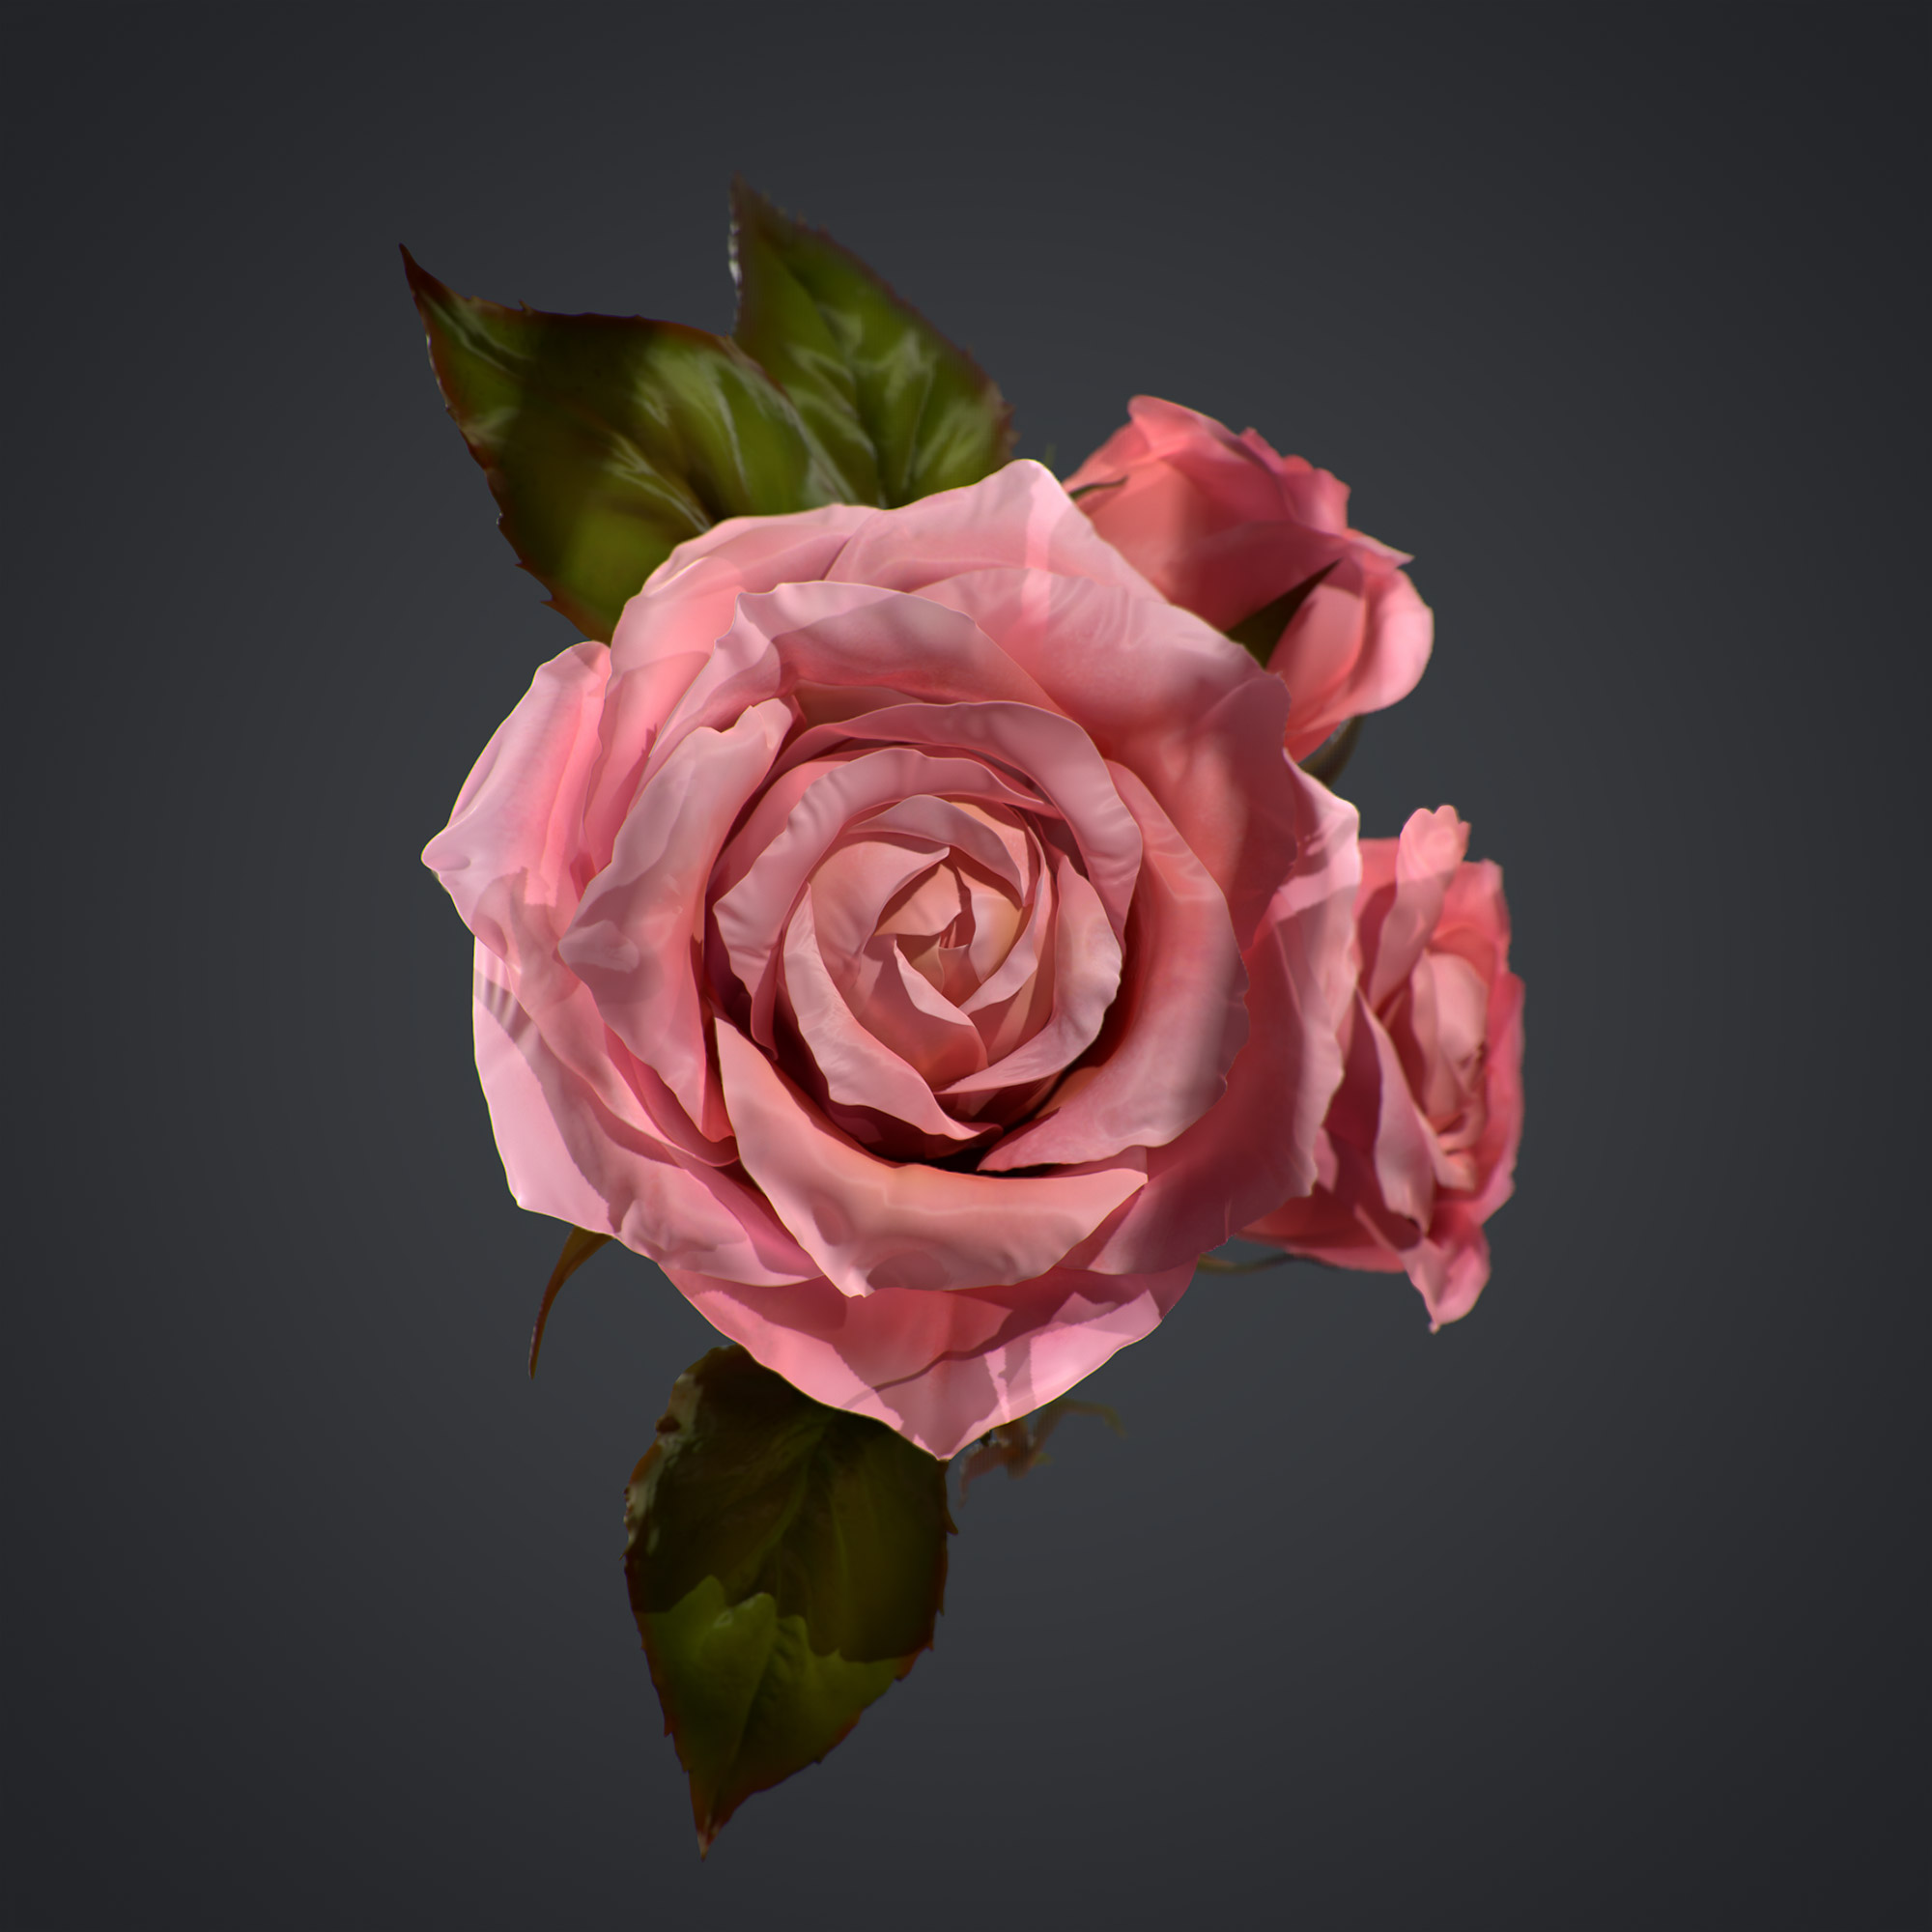 rose_2_002_small